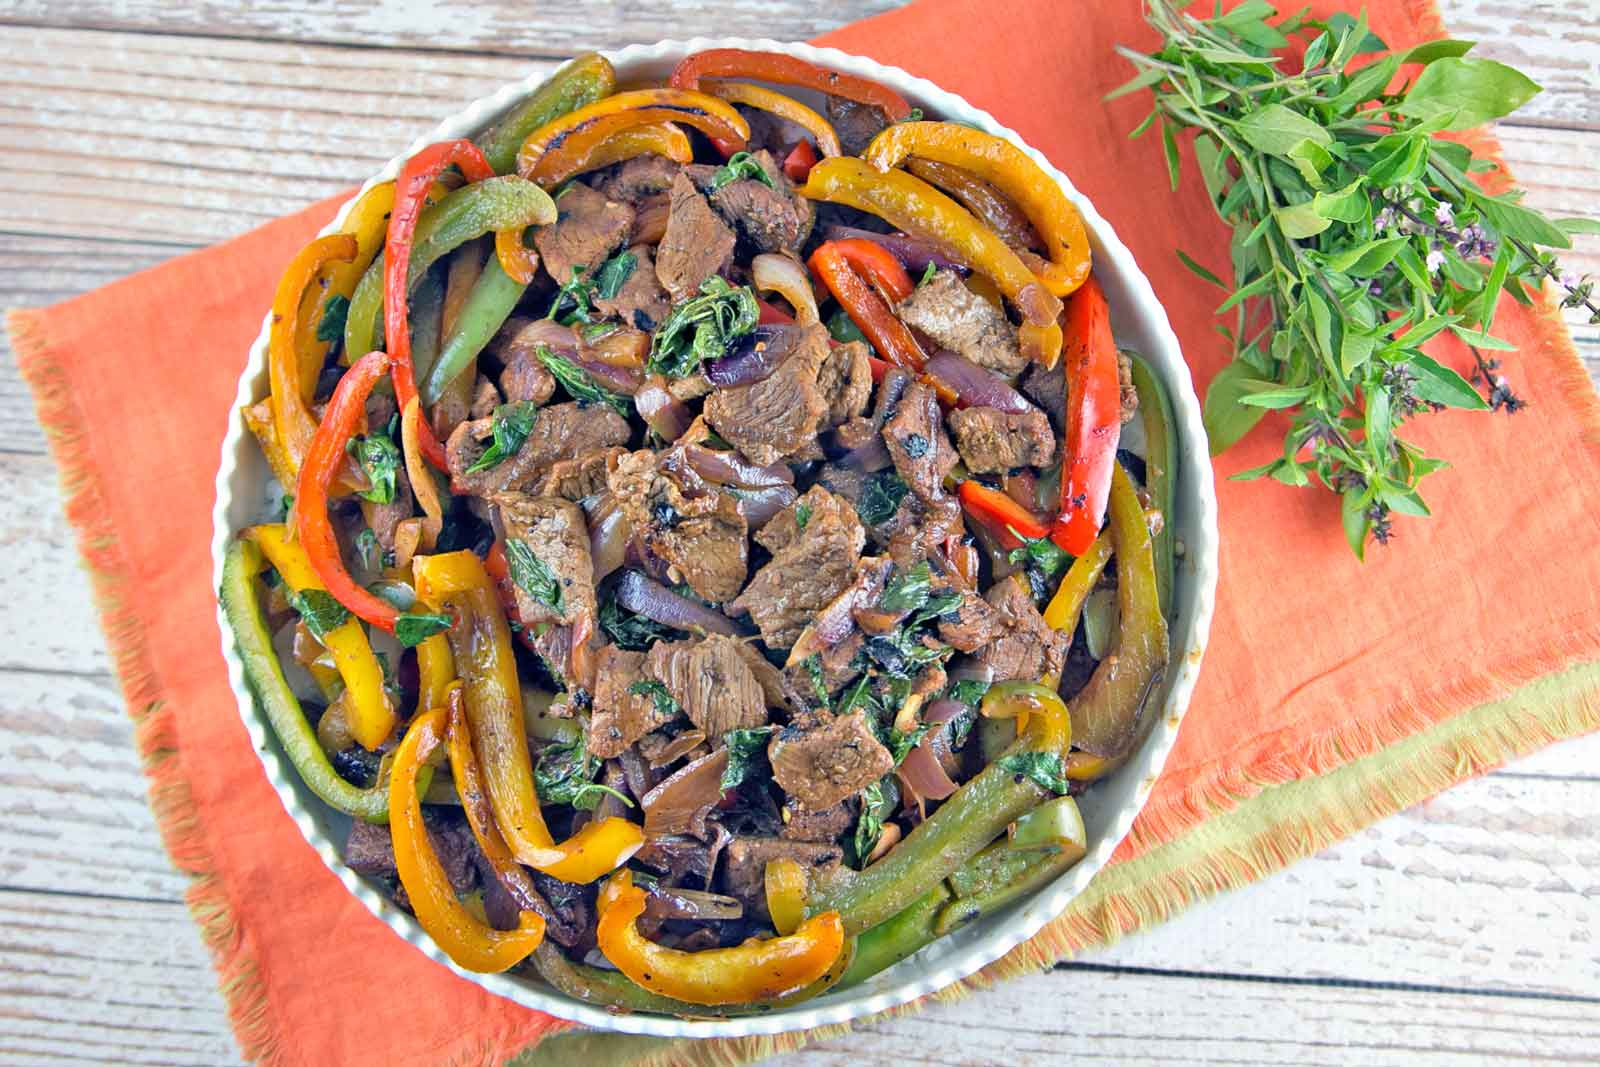 Thai Basil Beef: thinly sliced beef, bell peppers, and Thai basil combine into this fast, flavorful dish.  Make your own Thai takeout in under 15 minutes! {Bunsen Burner Bakery}